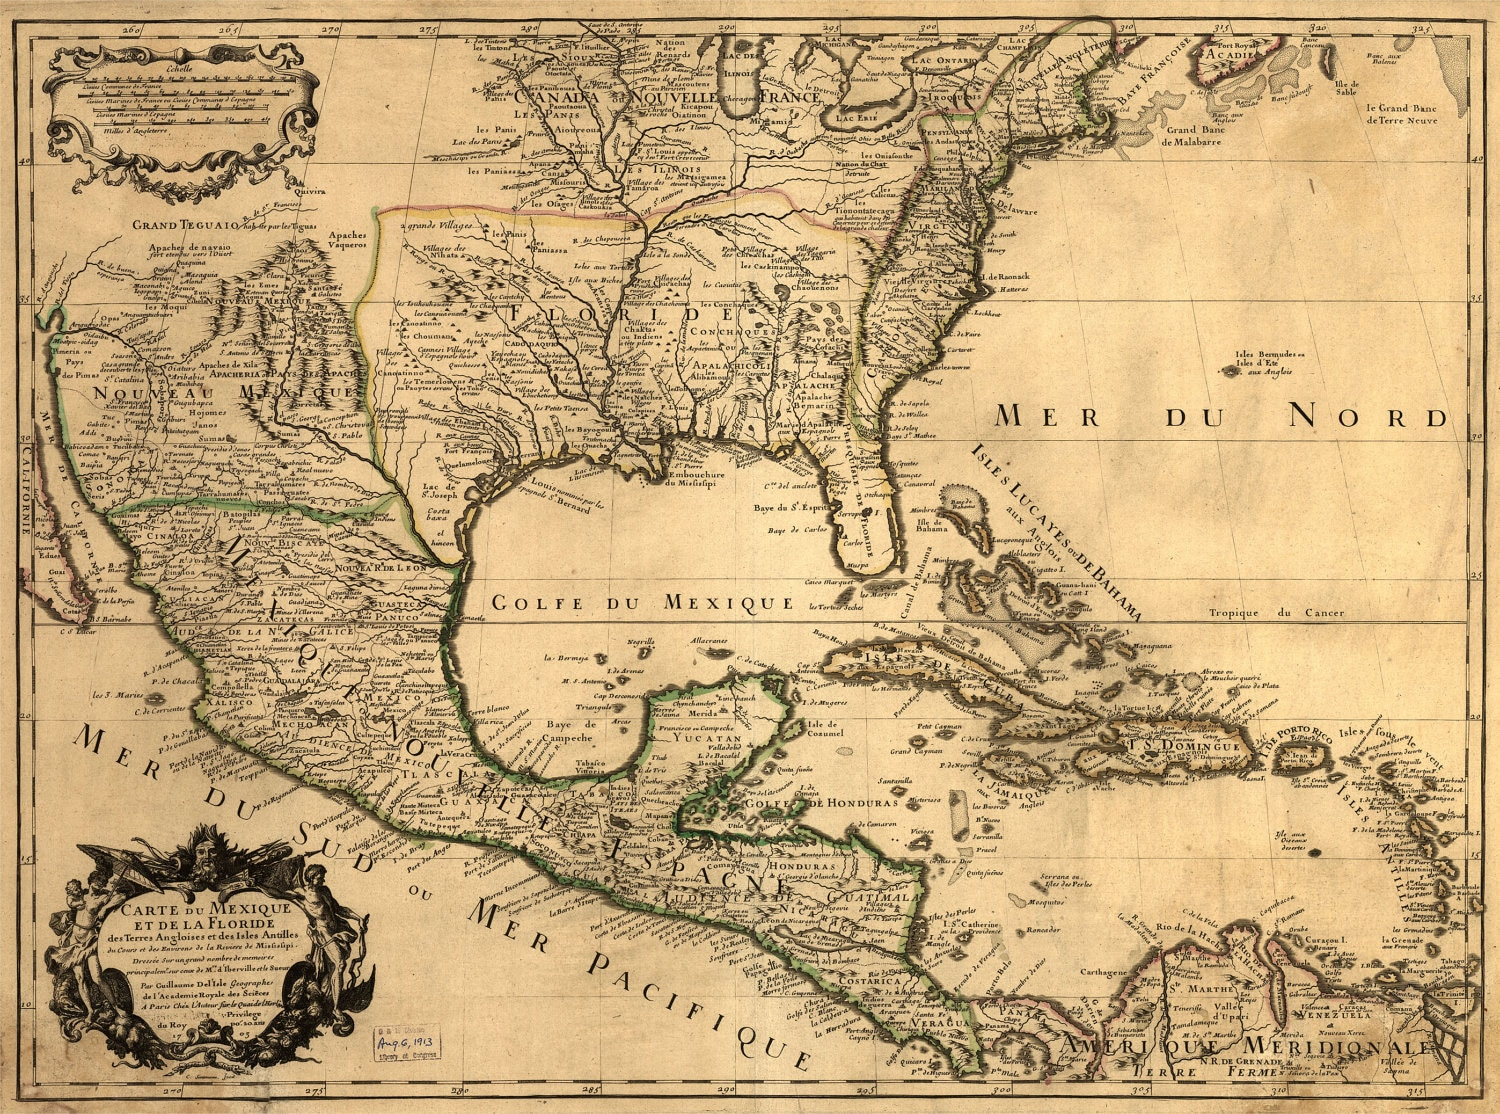 US MAP Nice Map Old America Mexico Gulf Historic - Historic us maps